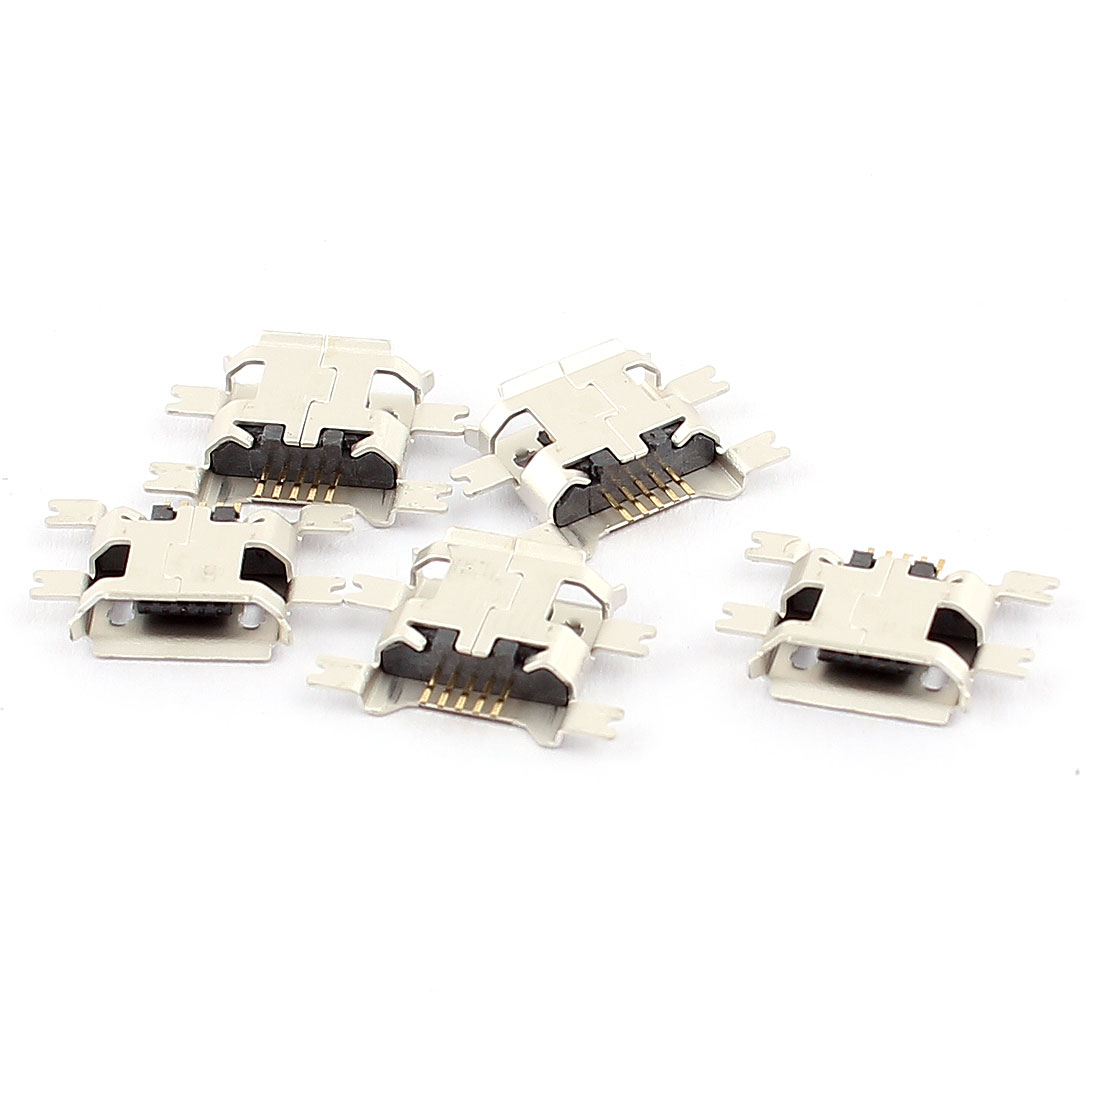 5pcs Micro Usb Female Socket 180 Degree 5 Pin Smd Smt Jack Solder Wiring Connector